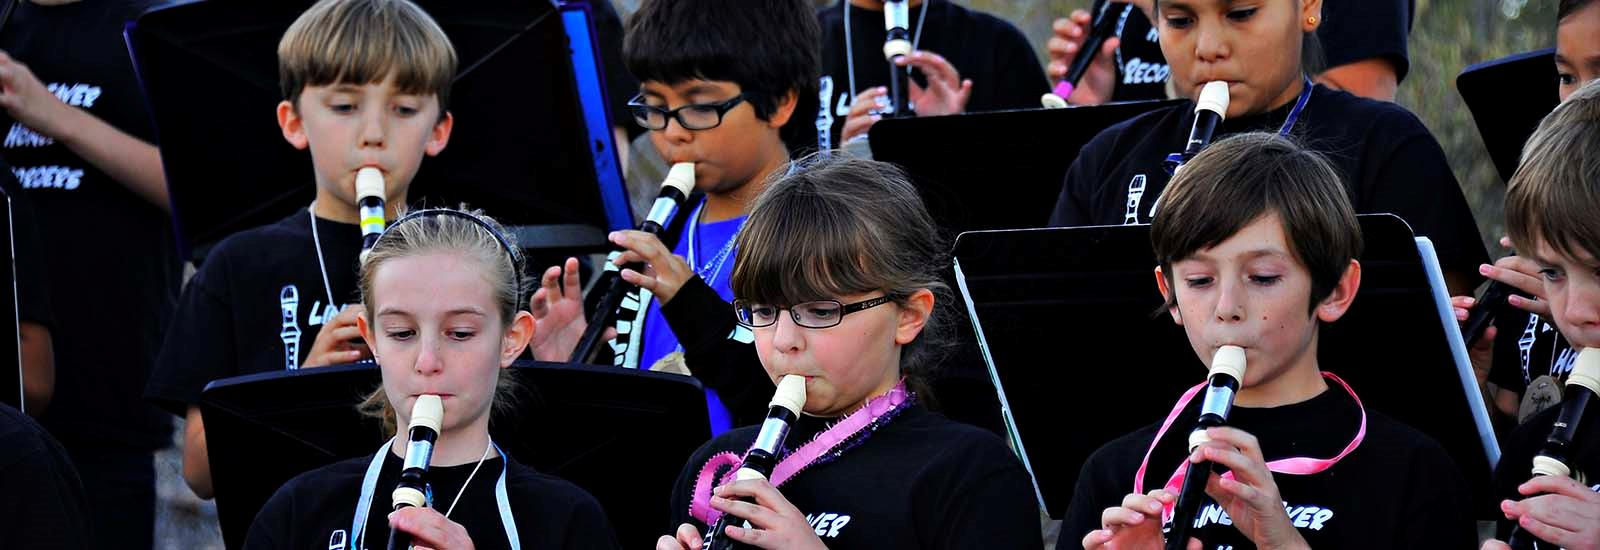 Our recorder choir performs often.